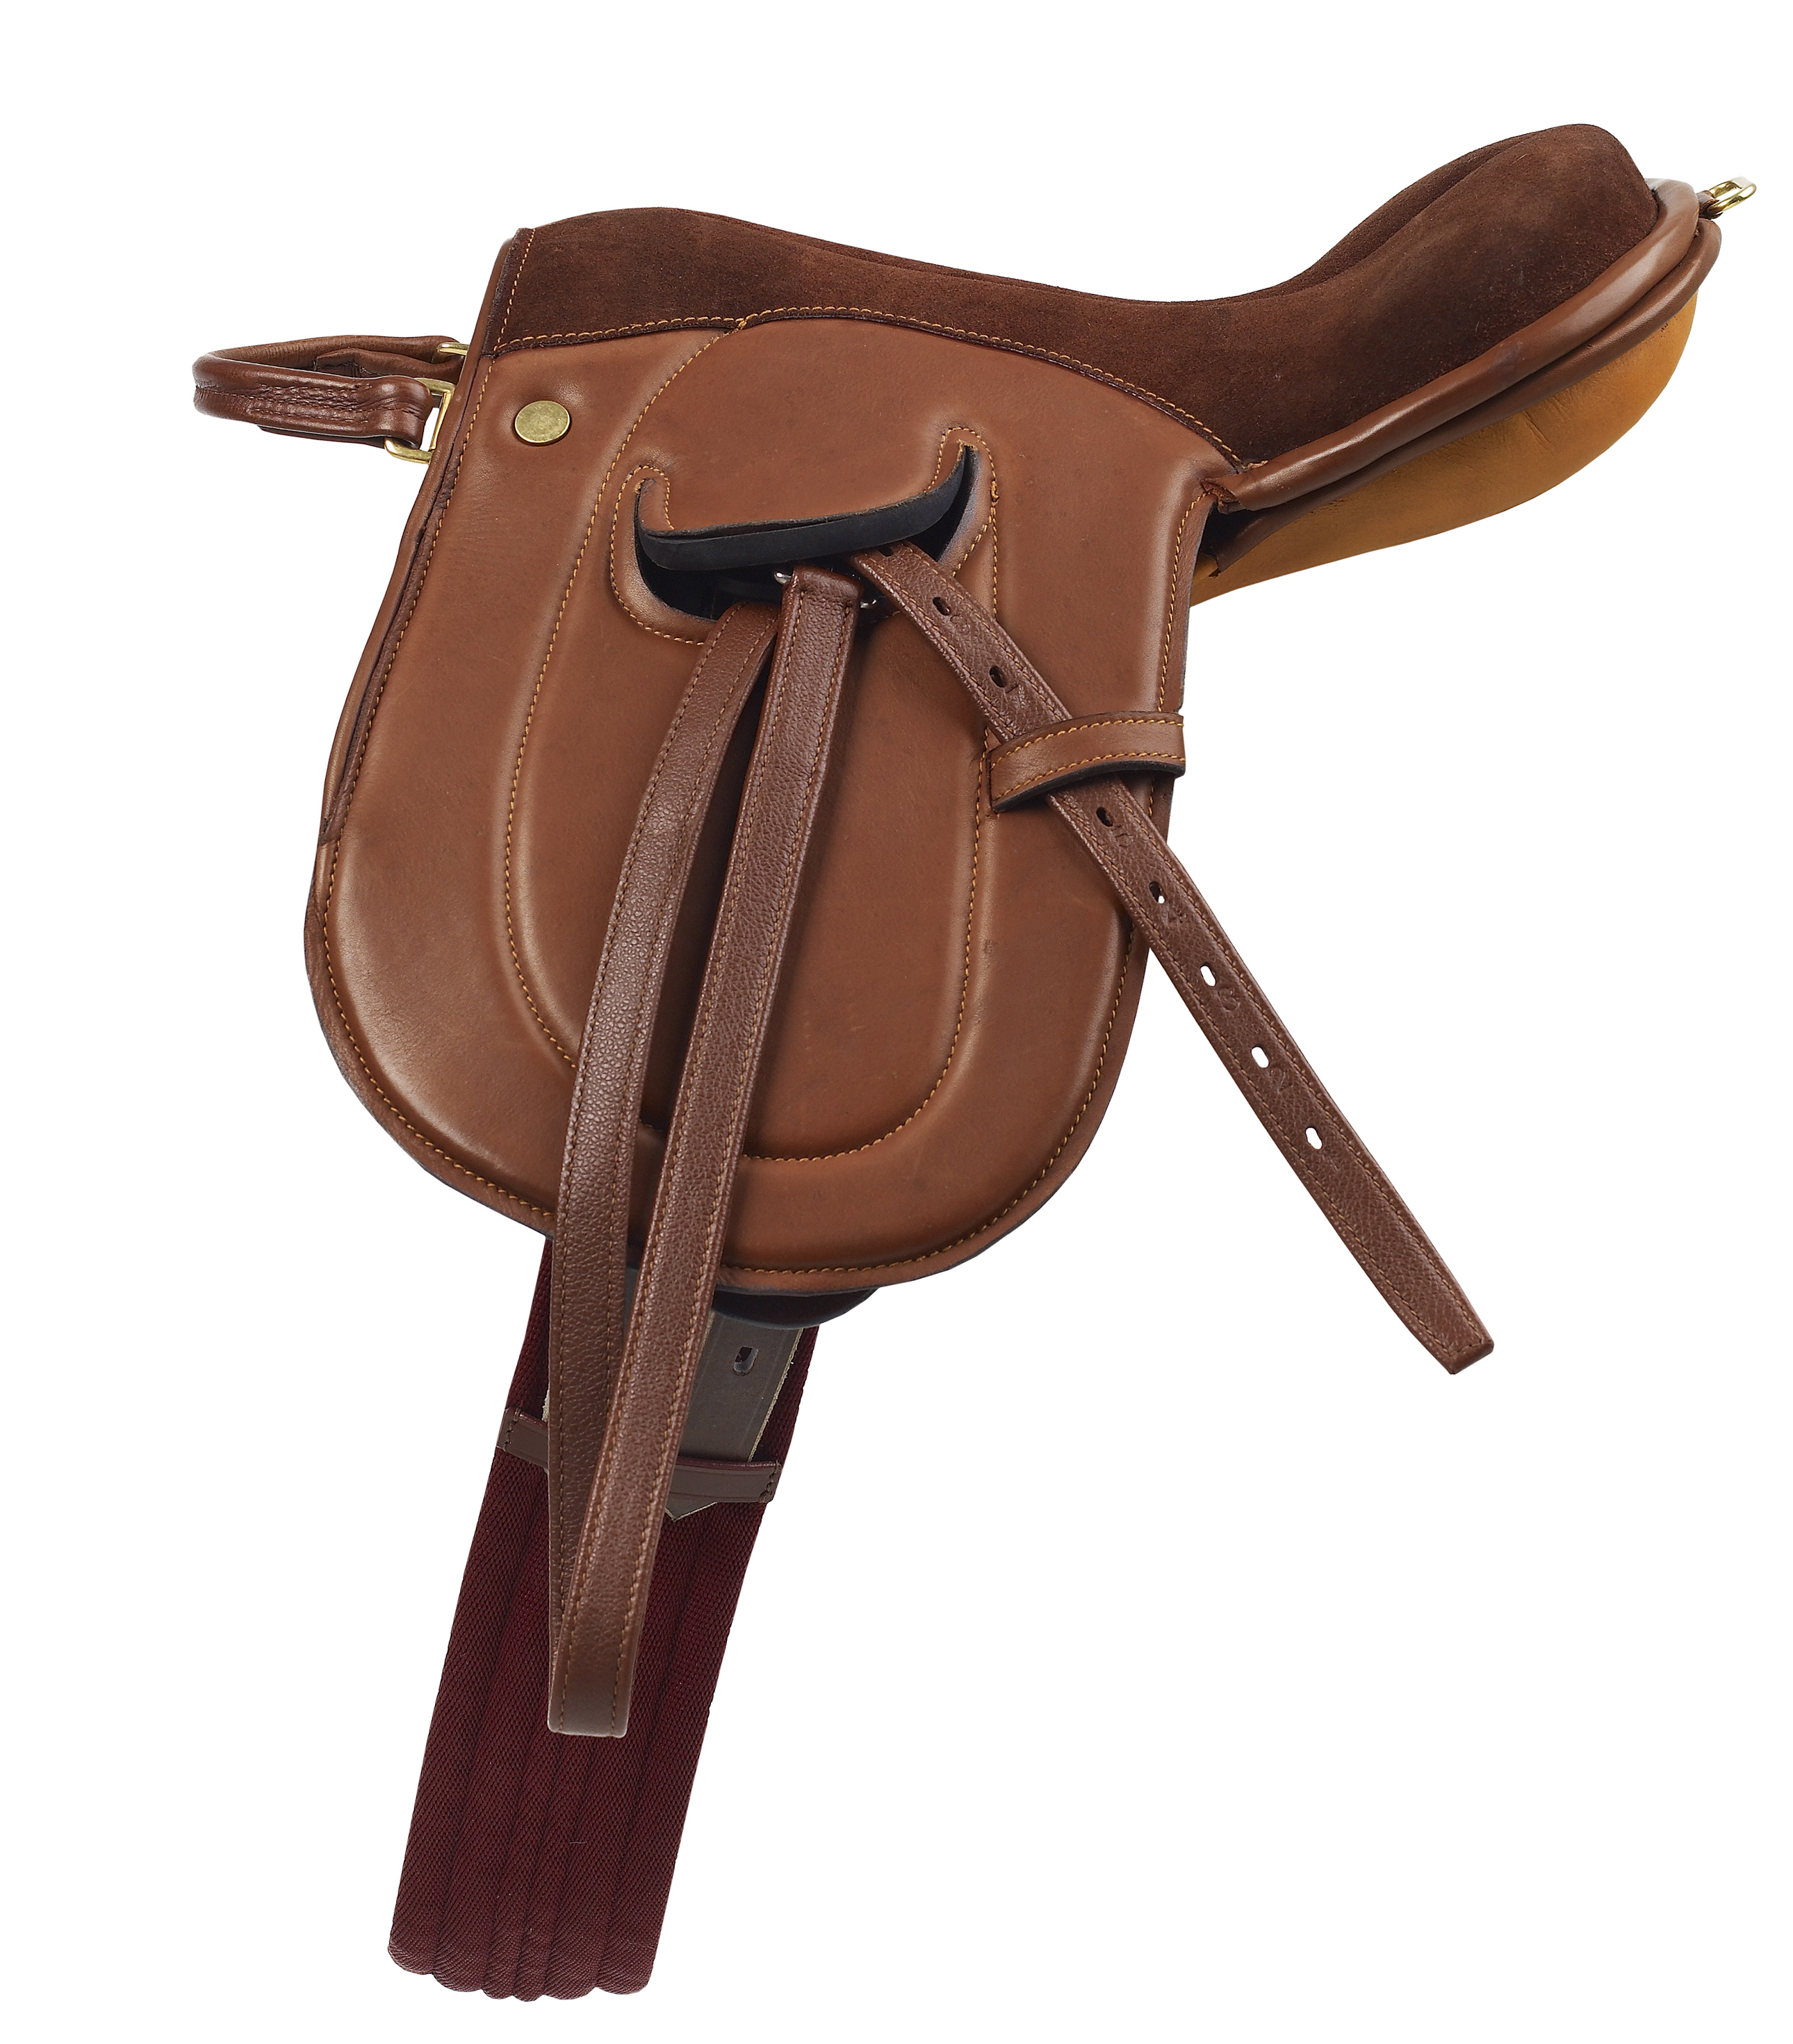 Sold as a Pair Ovation Replacement English Saddle Billet Guards